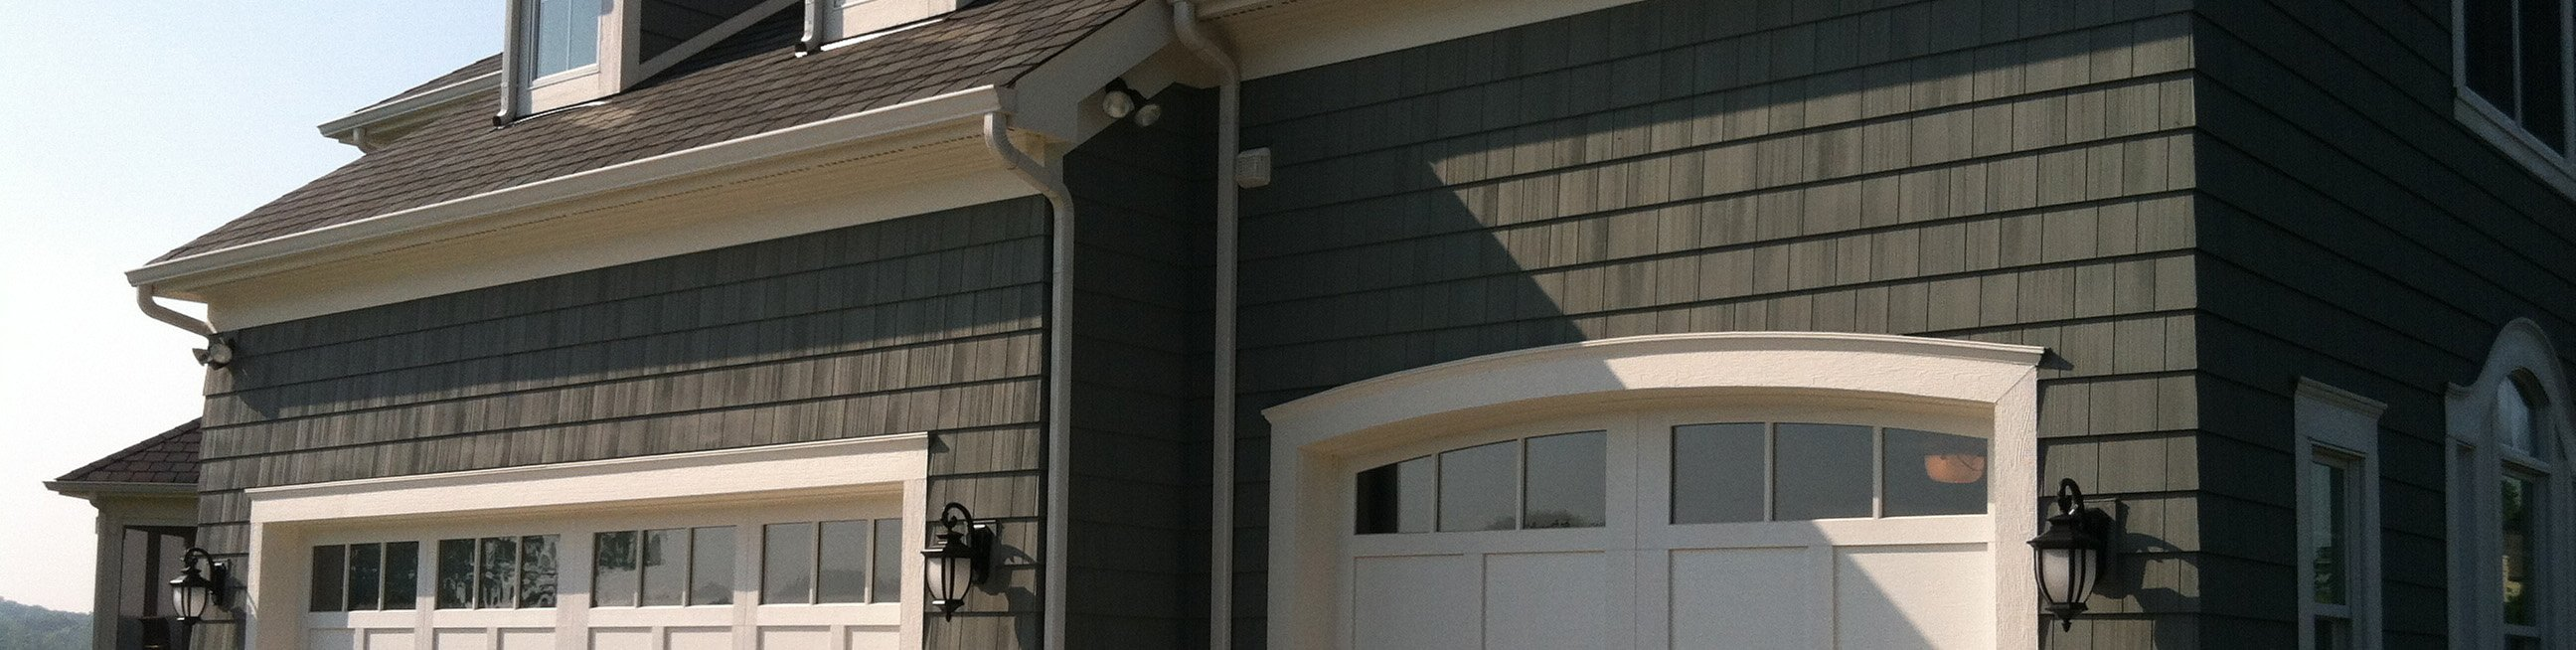 Commercial products rubbair doors nofziger garage doors for Dublin garage door repair